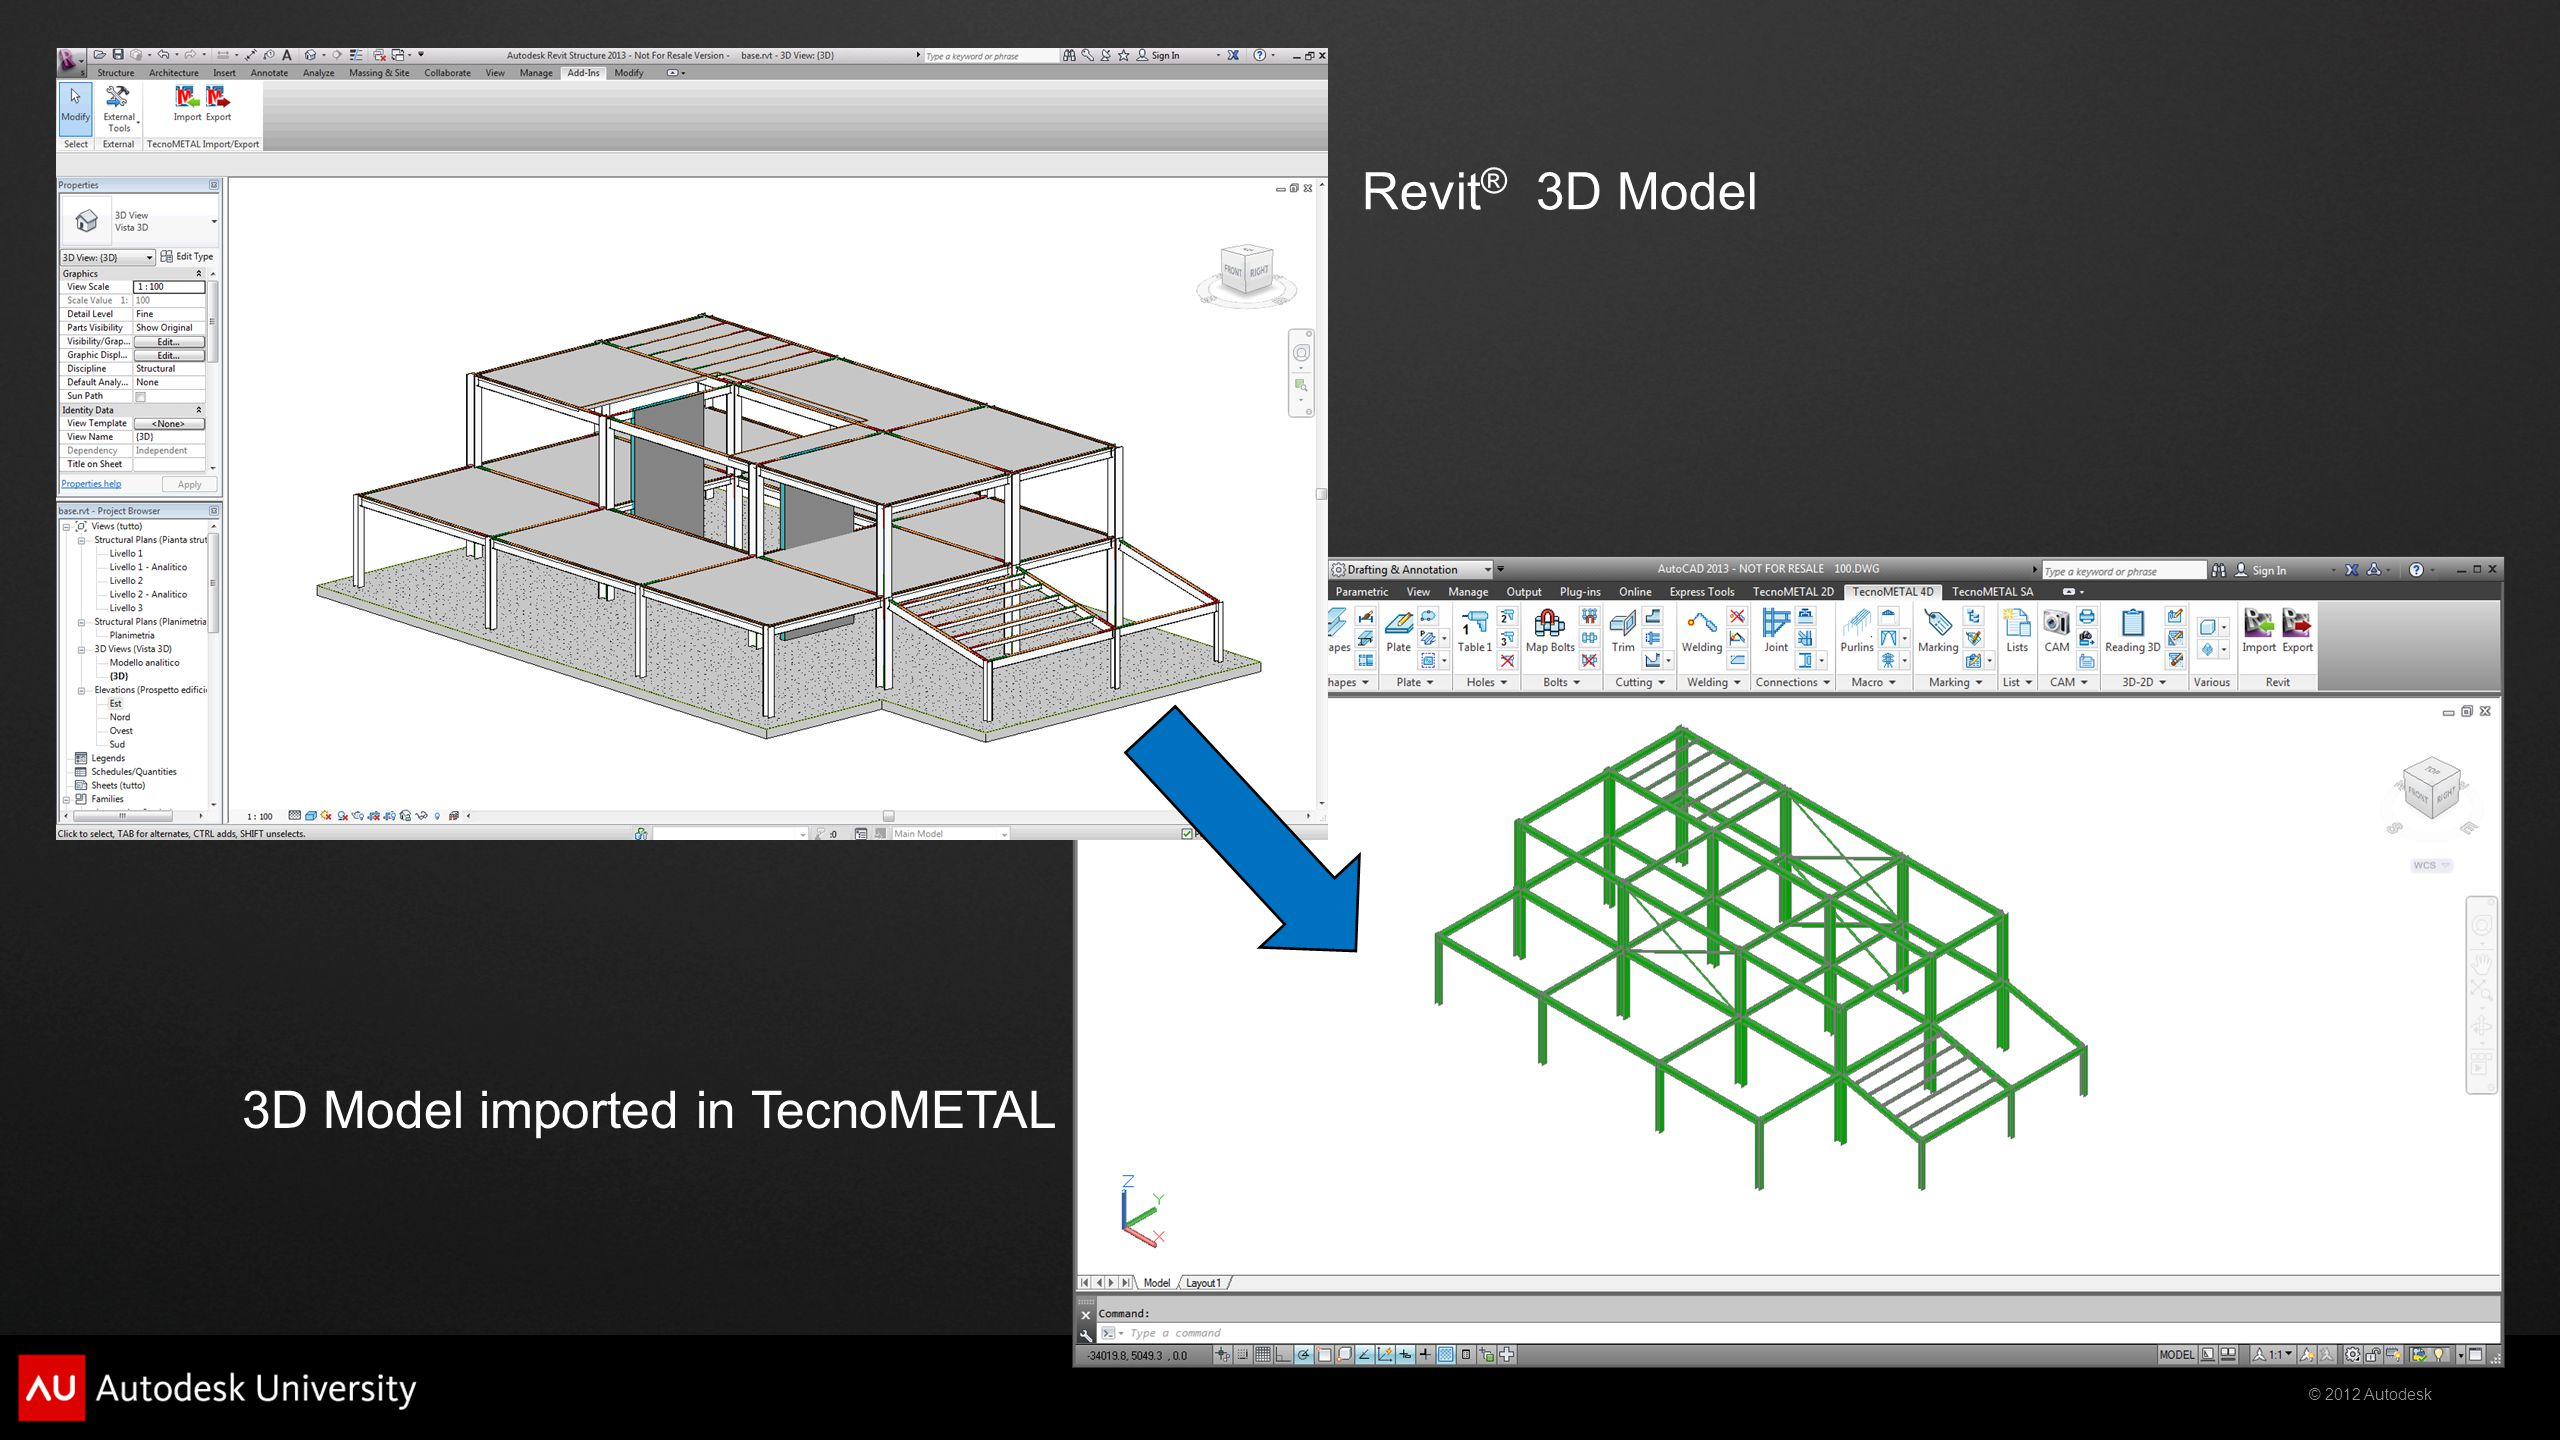 Revit® 3D Model 3D Model imported in TecnoMETAL